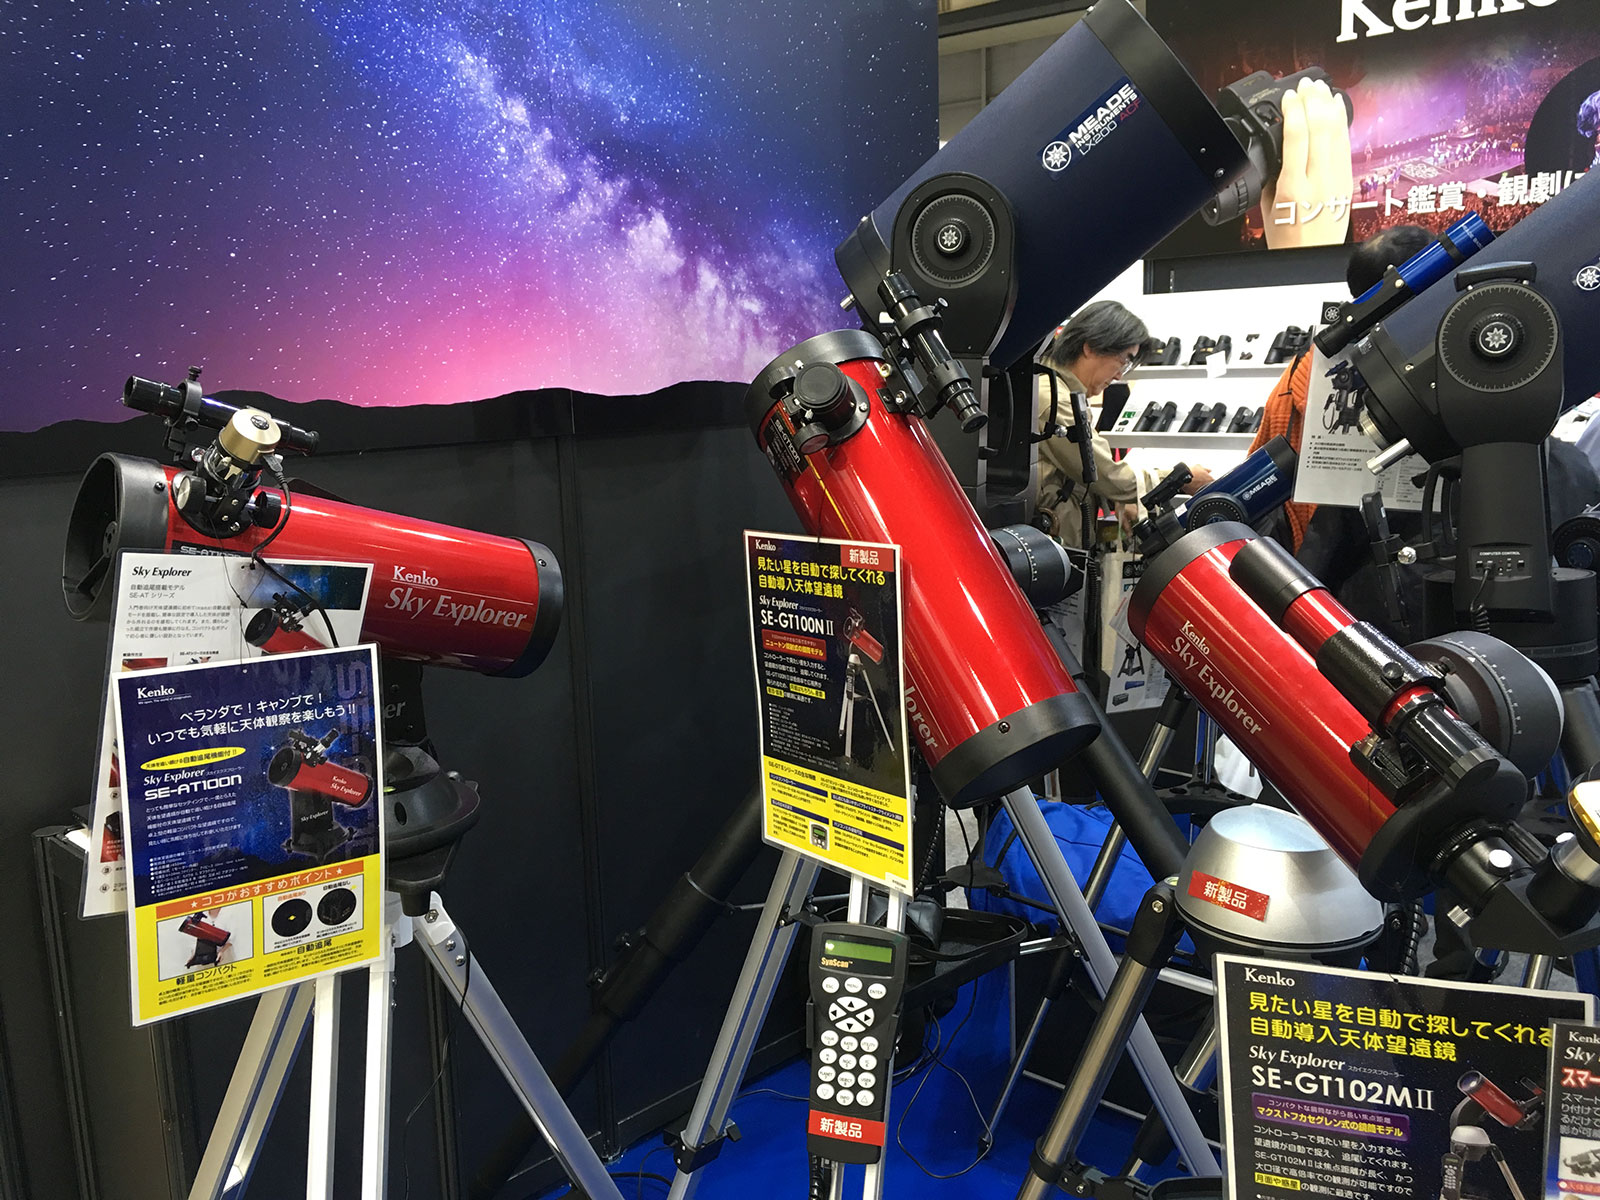 Kenko Sky Explorer series, on the other hand, features beginner-friendly telescope models so compact and easy to be carried you could use them out on the fields or comfortably on your veranda.